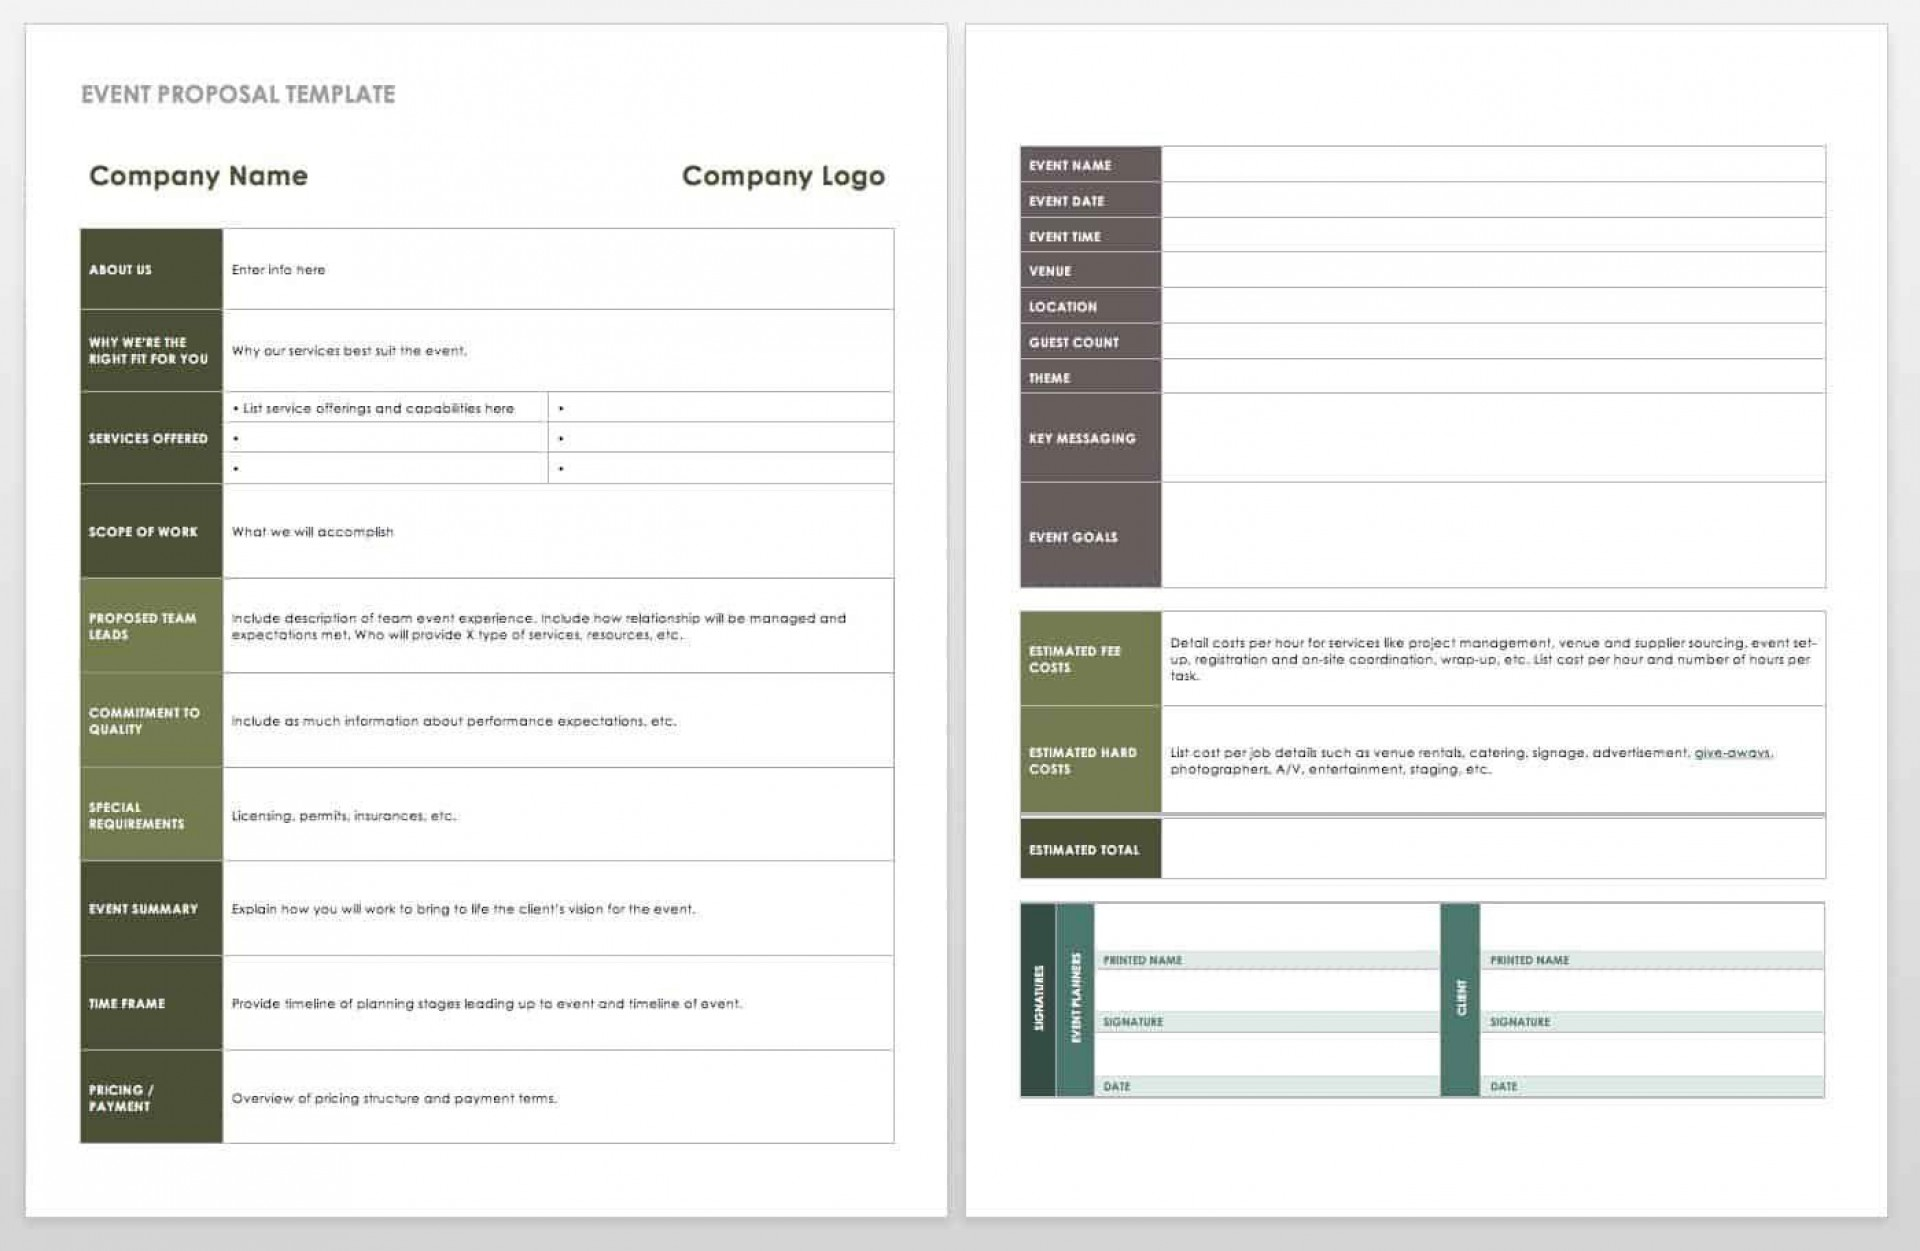 006 Imposing Free Community Event Planner Template For Excel Concept 1920